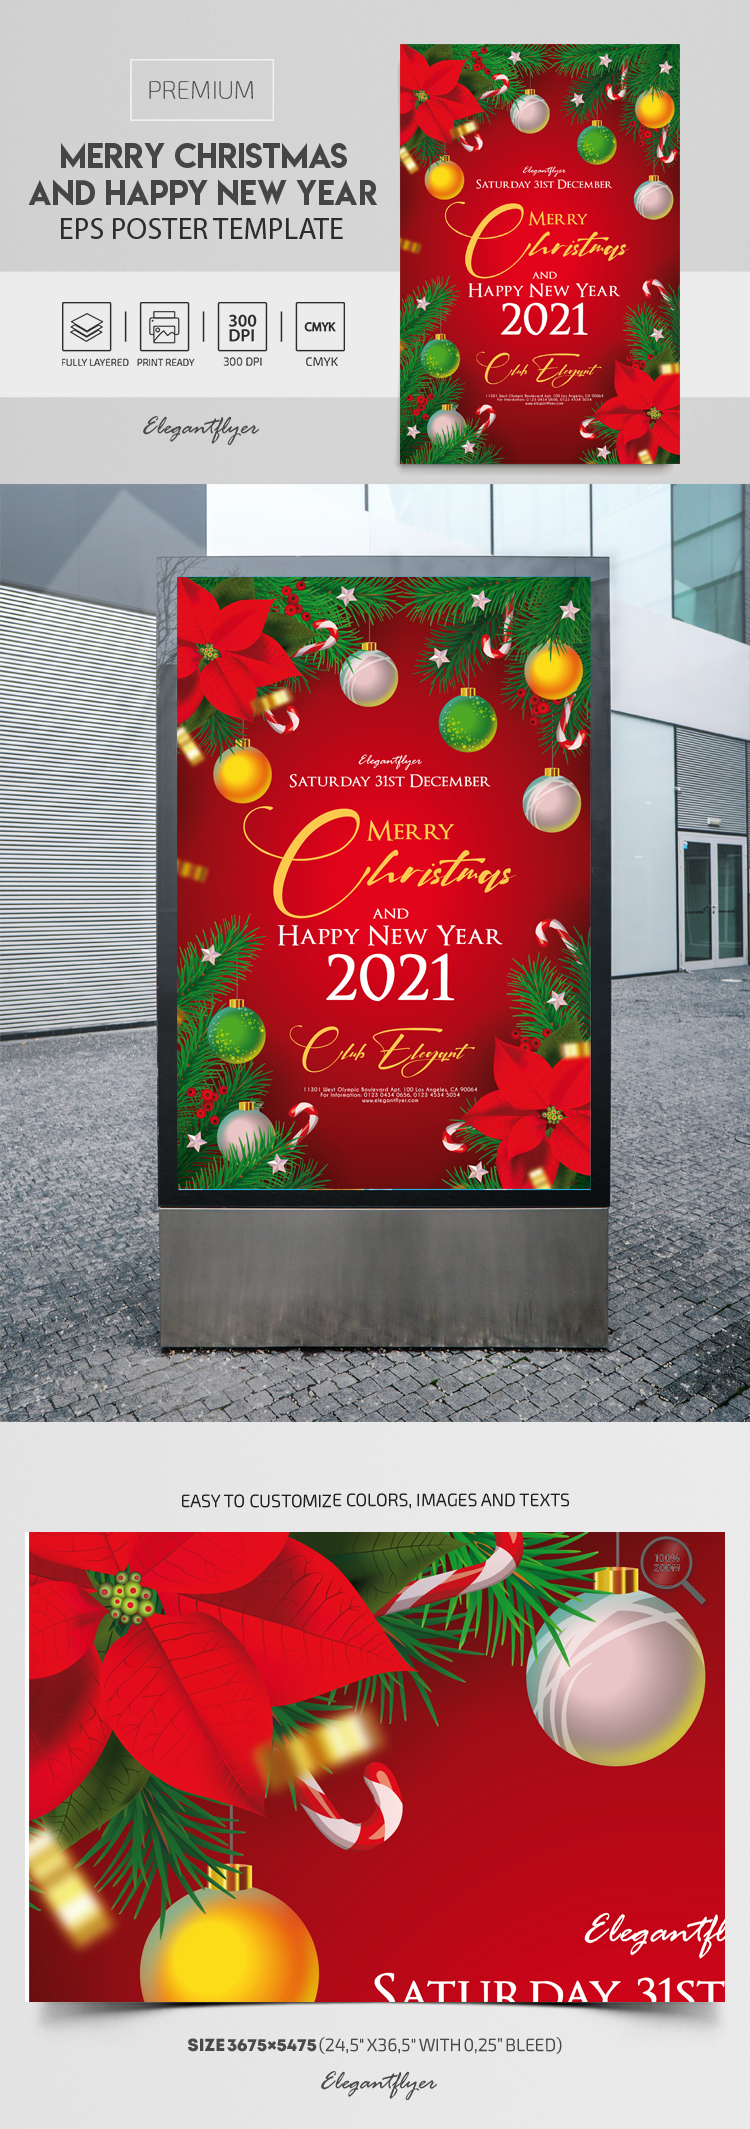 Merry Christmas and Happy New Year – Premium EPS Poster Template